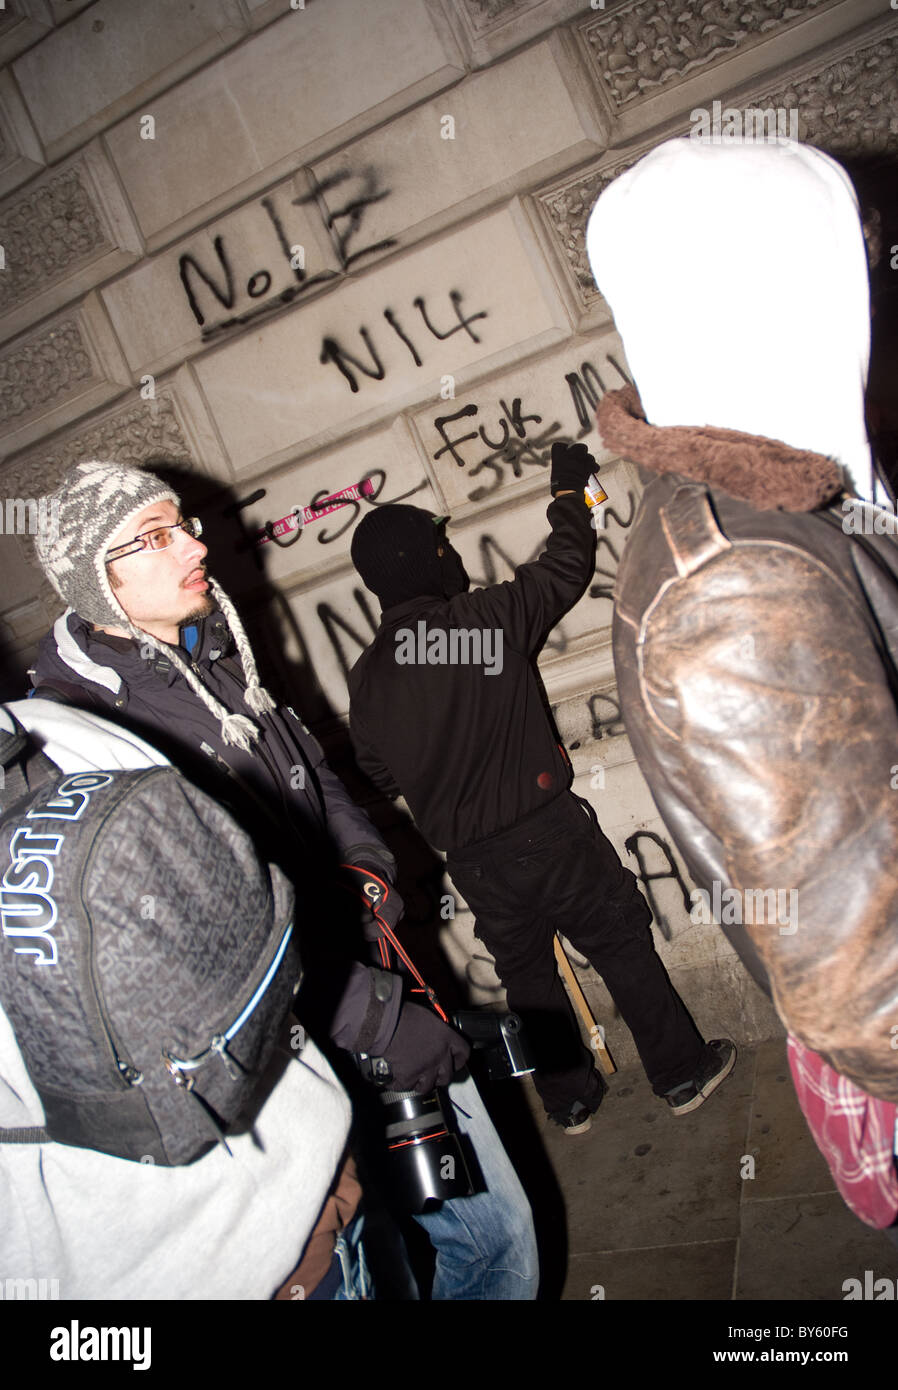 student gravitating at parliament sq during student tuition fee protest - Stock Image